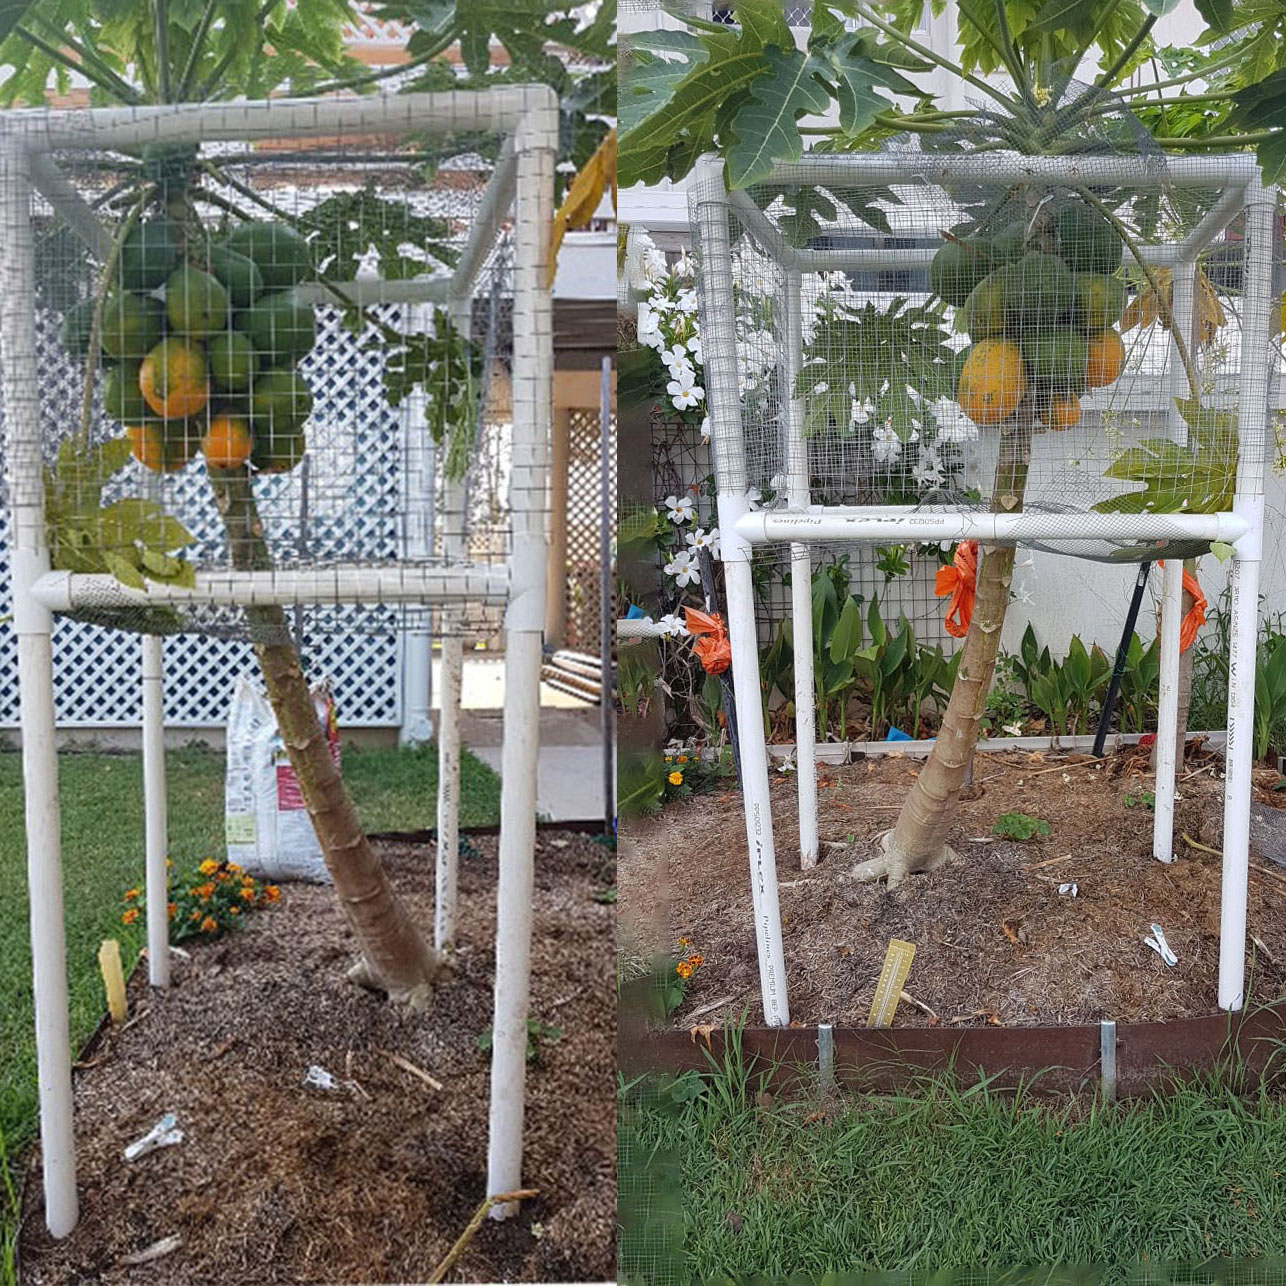 Paw Paw tree protection frame covered with wire mesh to protect against birds